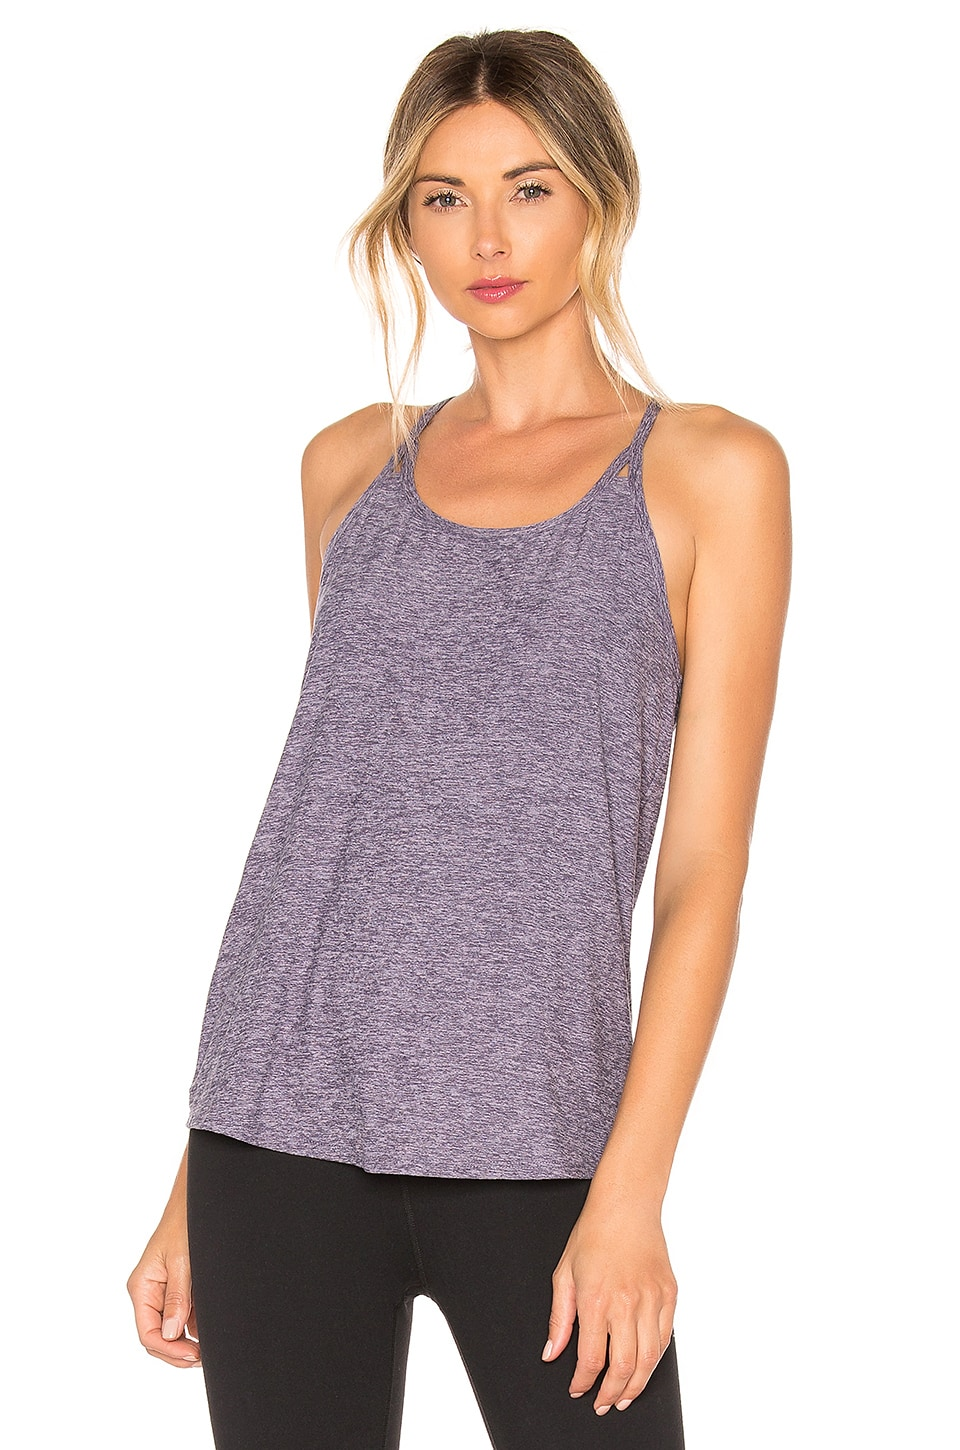 BEYOND YOGA BEYOND YOGA SPLIT OPEN TANK IN PURPLE.